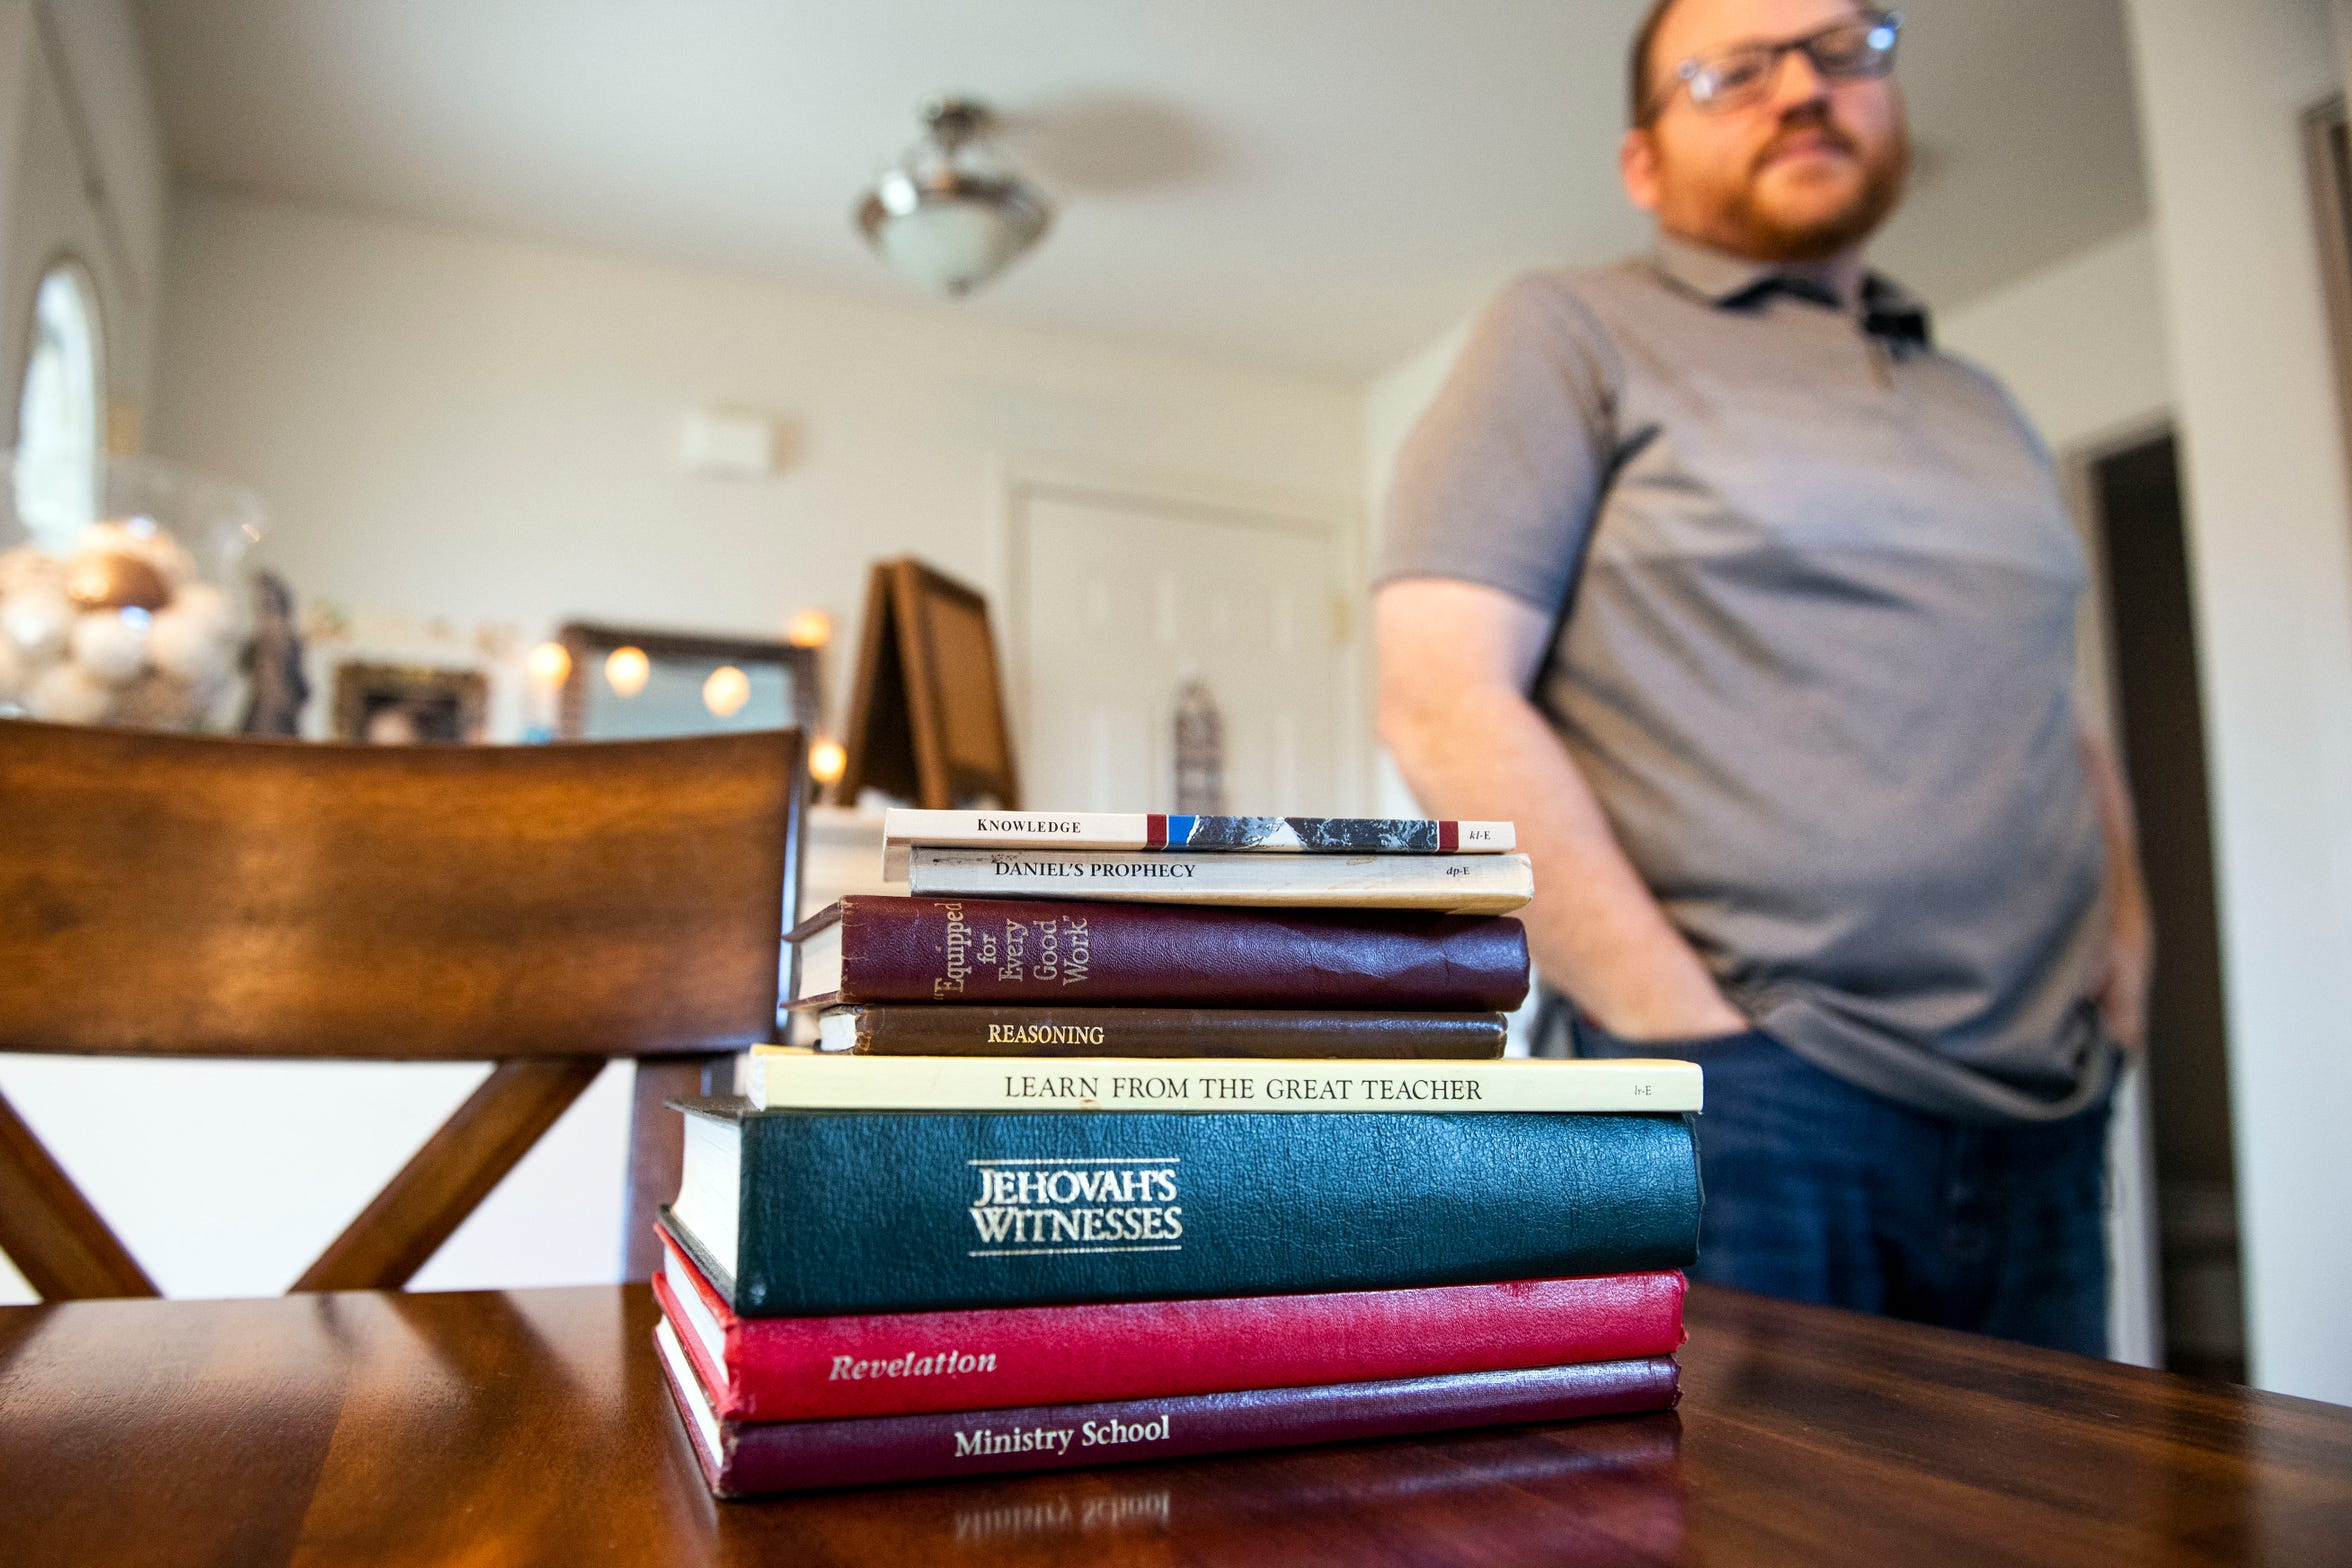 A stack of Jehovah's Witnesses' literature sits on the table as Martin Haugh, an ex-elder at the Red Lion Kingdom Hall, looks over them, Sunday, Oct. 21, 2018. The last straw for Haugh, before leaving the religion, was an email instructing him to discard certain literature. After doing his own research and learning about major contradictions in the faith, Haugh decided to leave. He's now a non-believer.